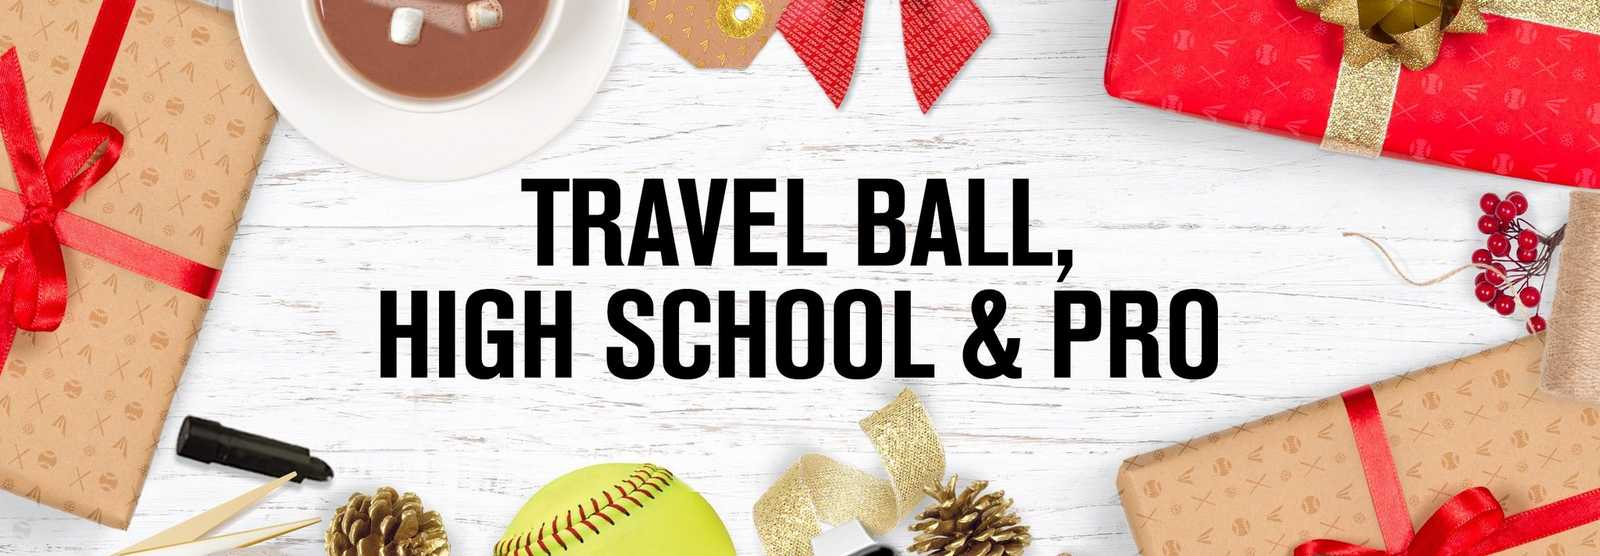 fastpitch-travel-ball-high-school-pro-gift-guide